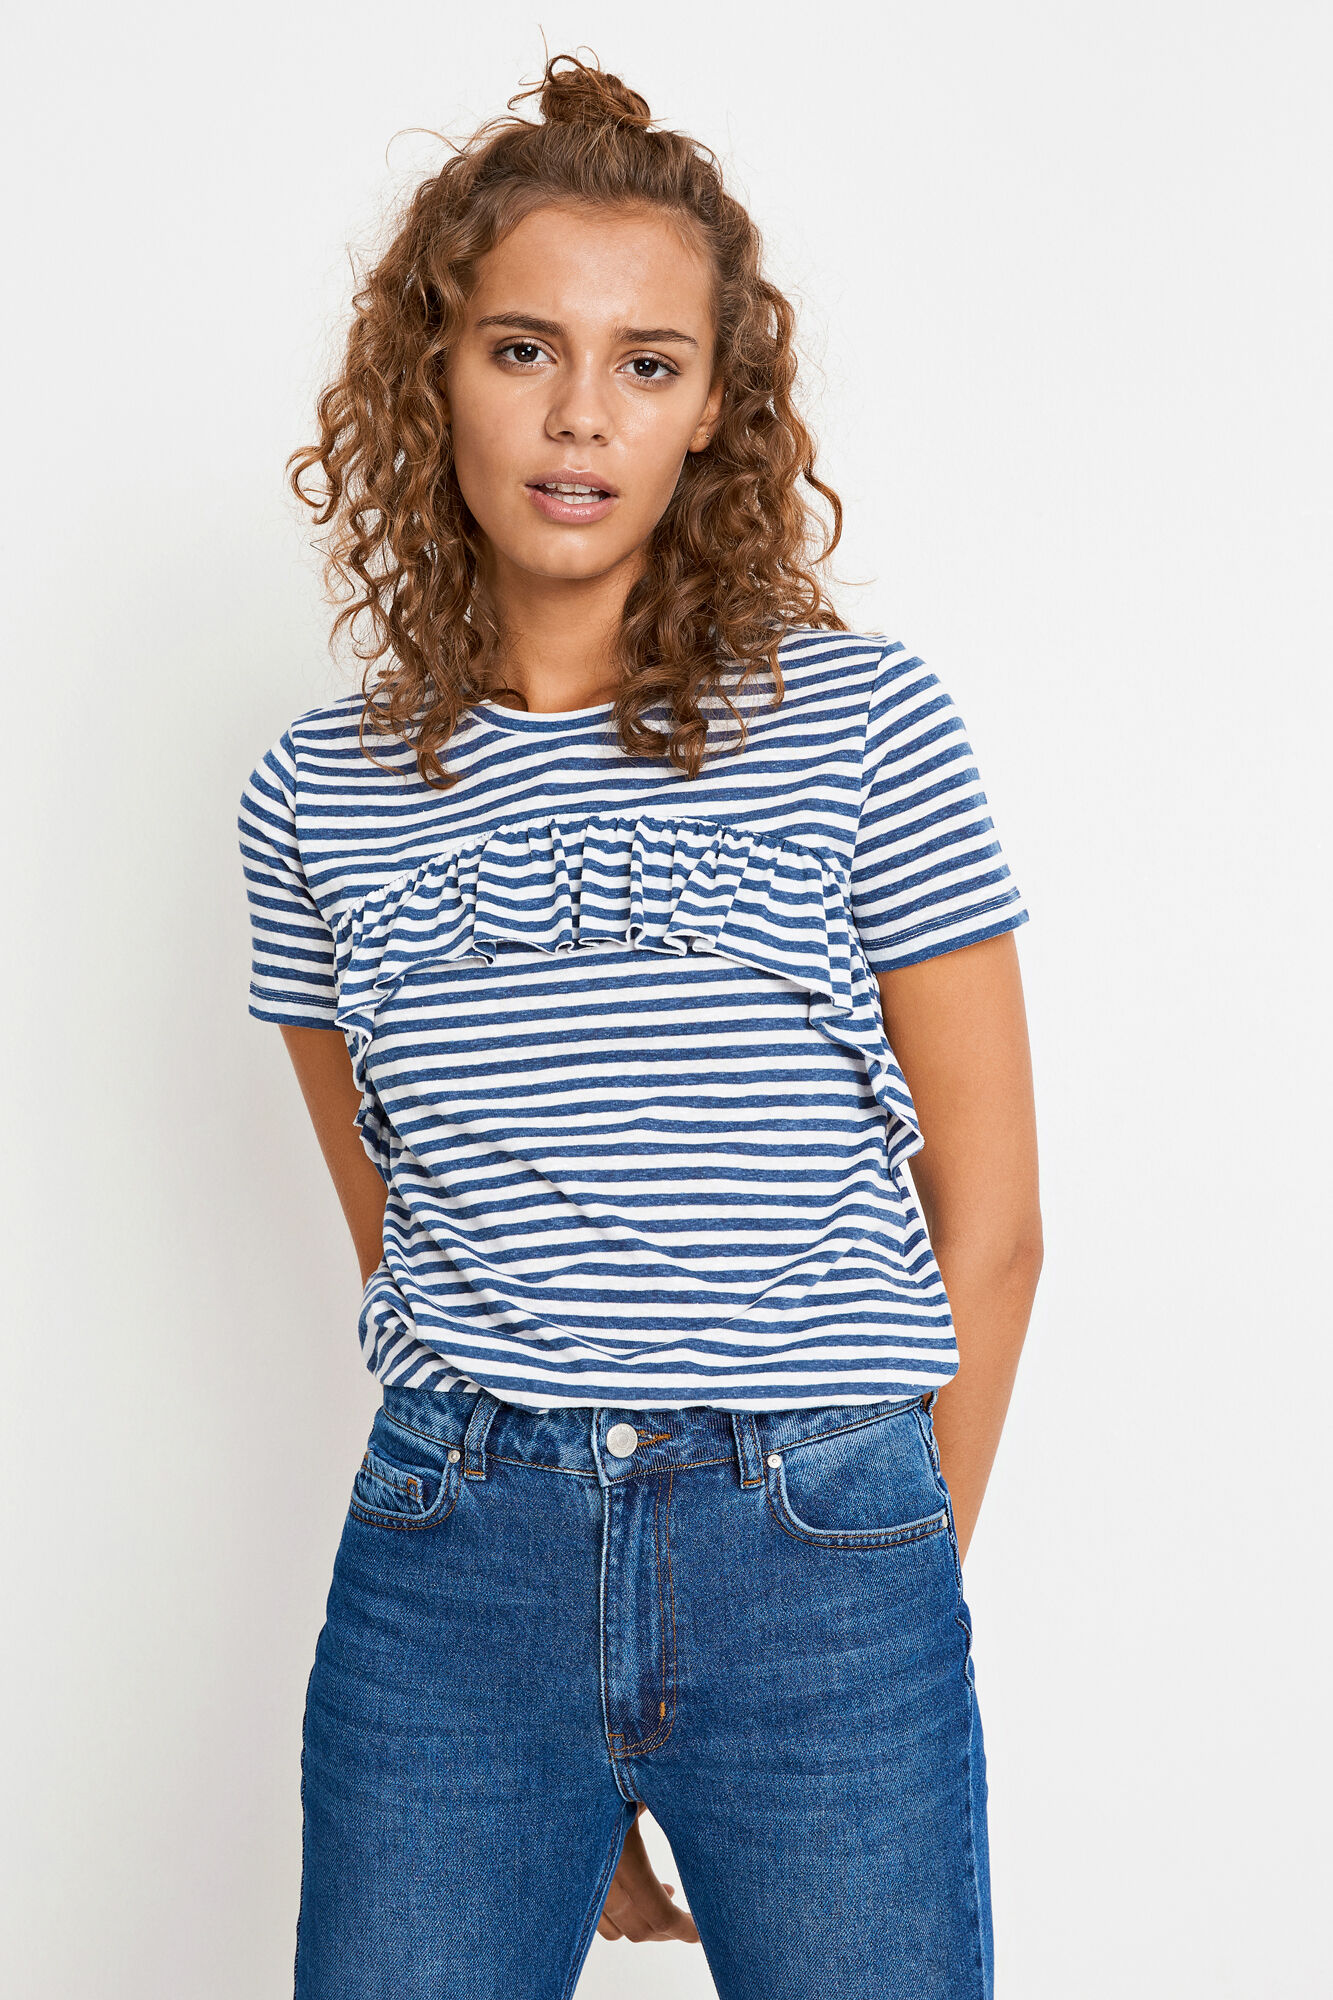 ENVARLA SS TEE STRIPE 5908, NAVY-WHITE STRIPE